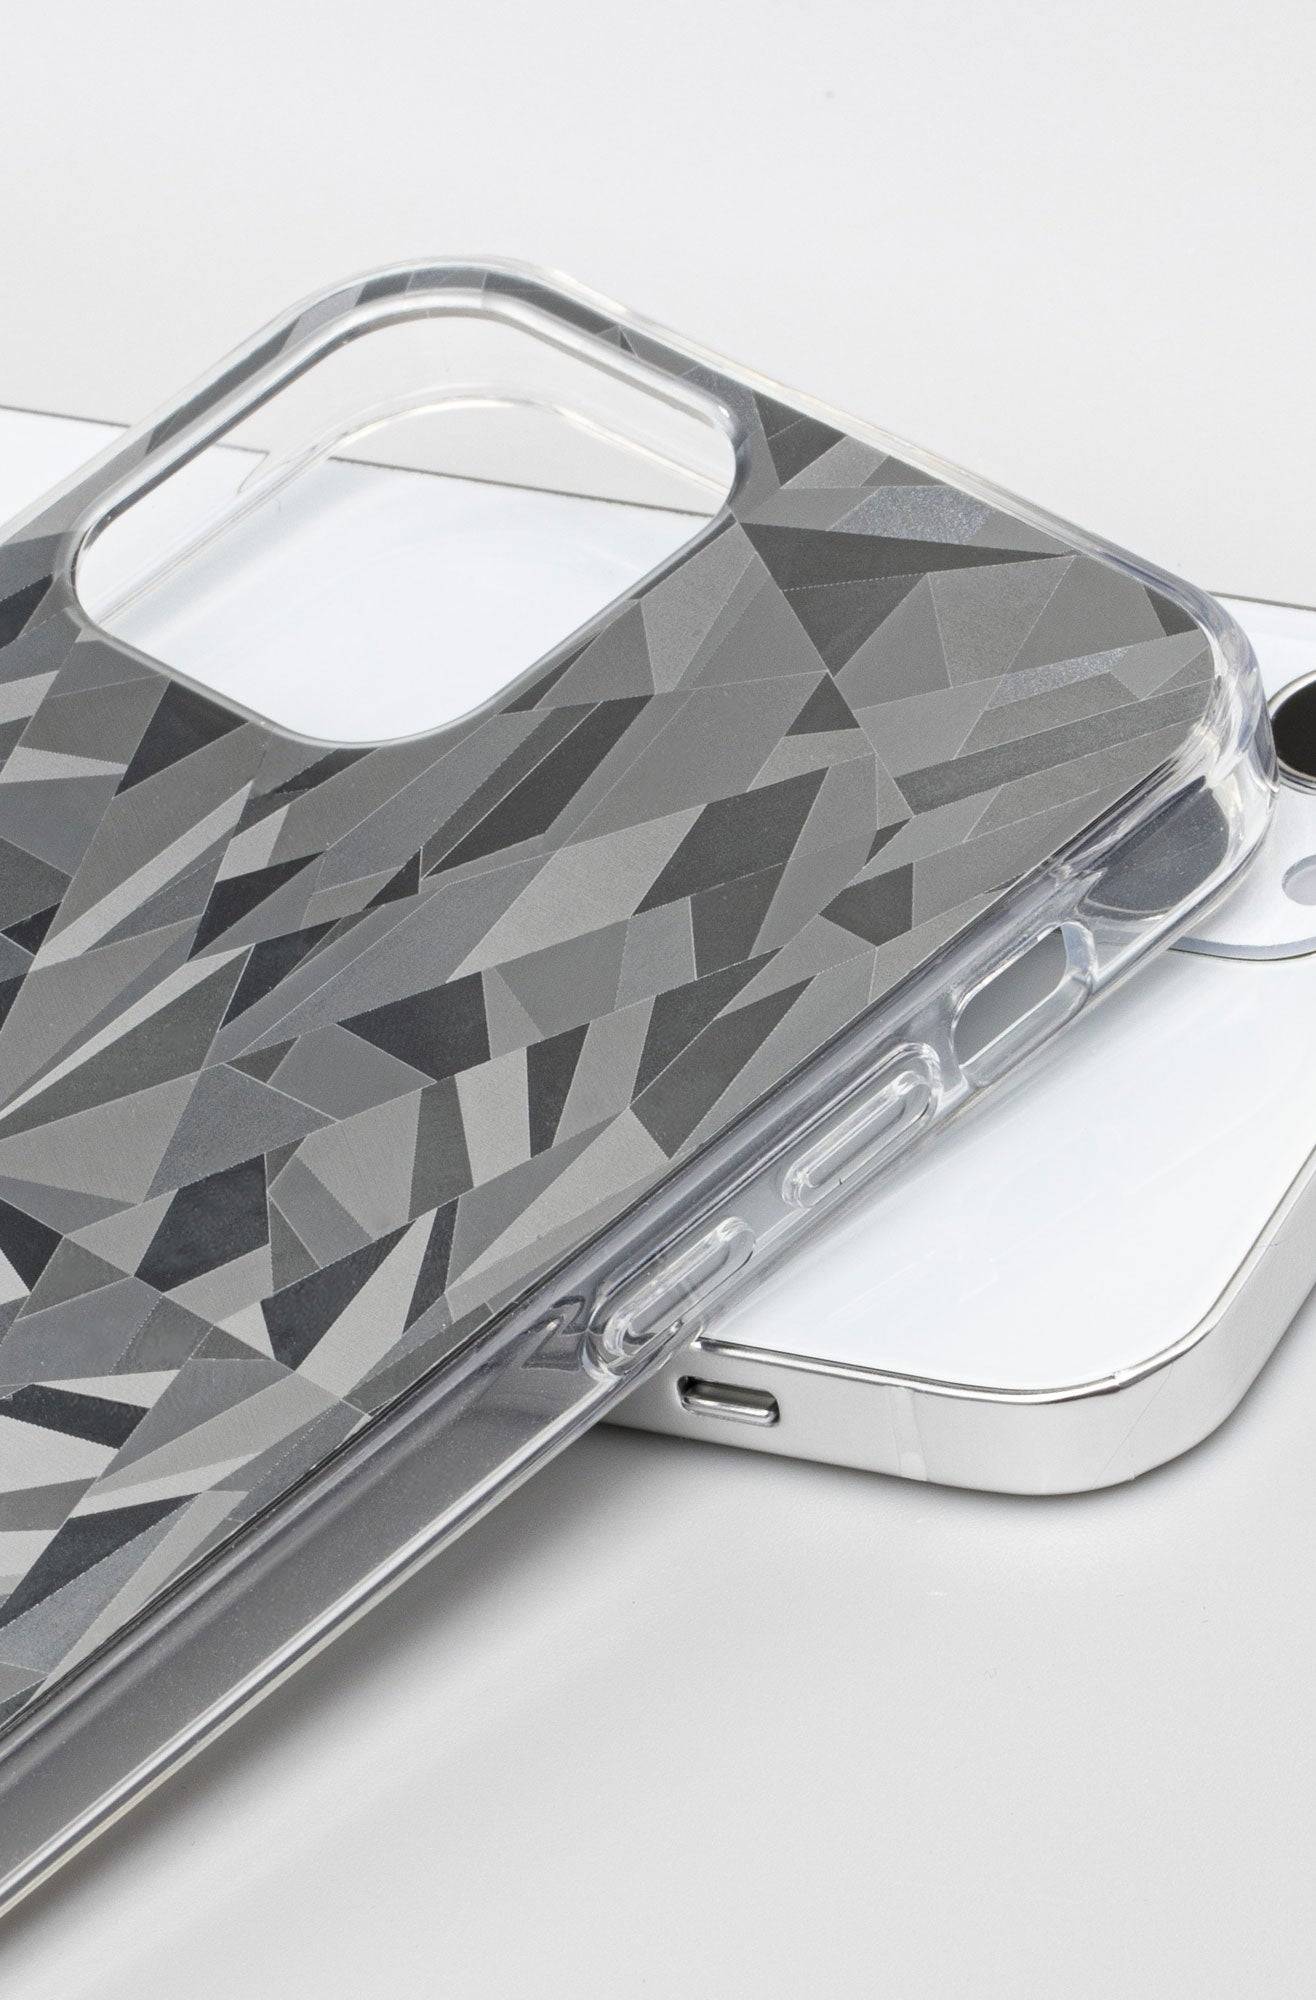 LAUT - DIAMOND case for iPhone 12 series